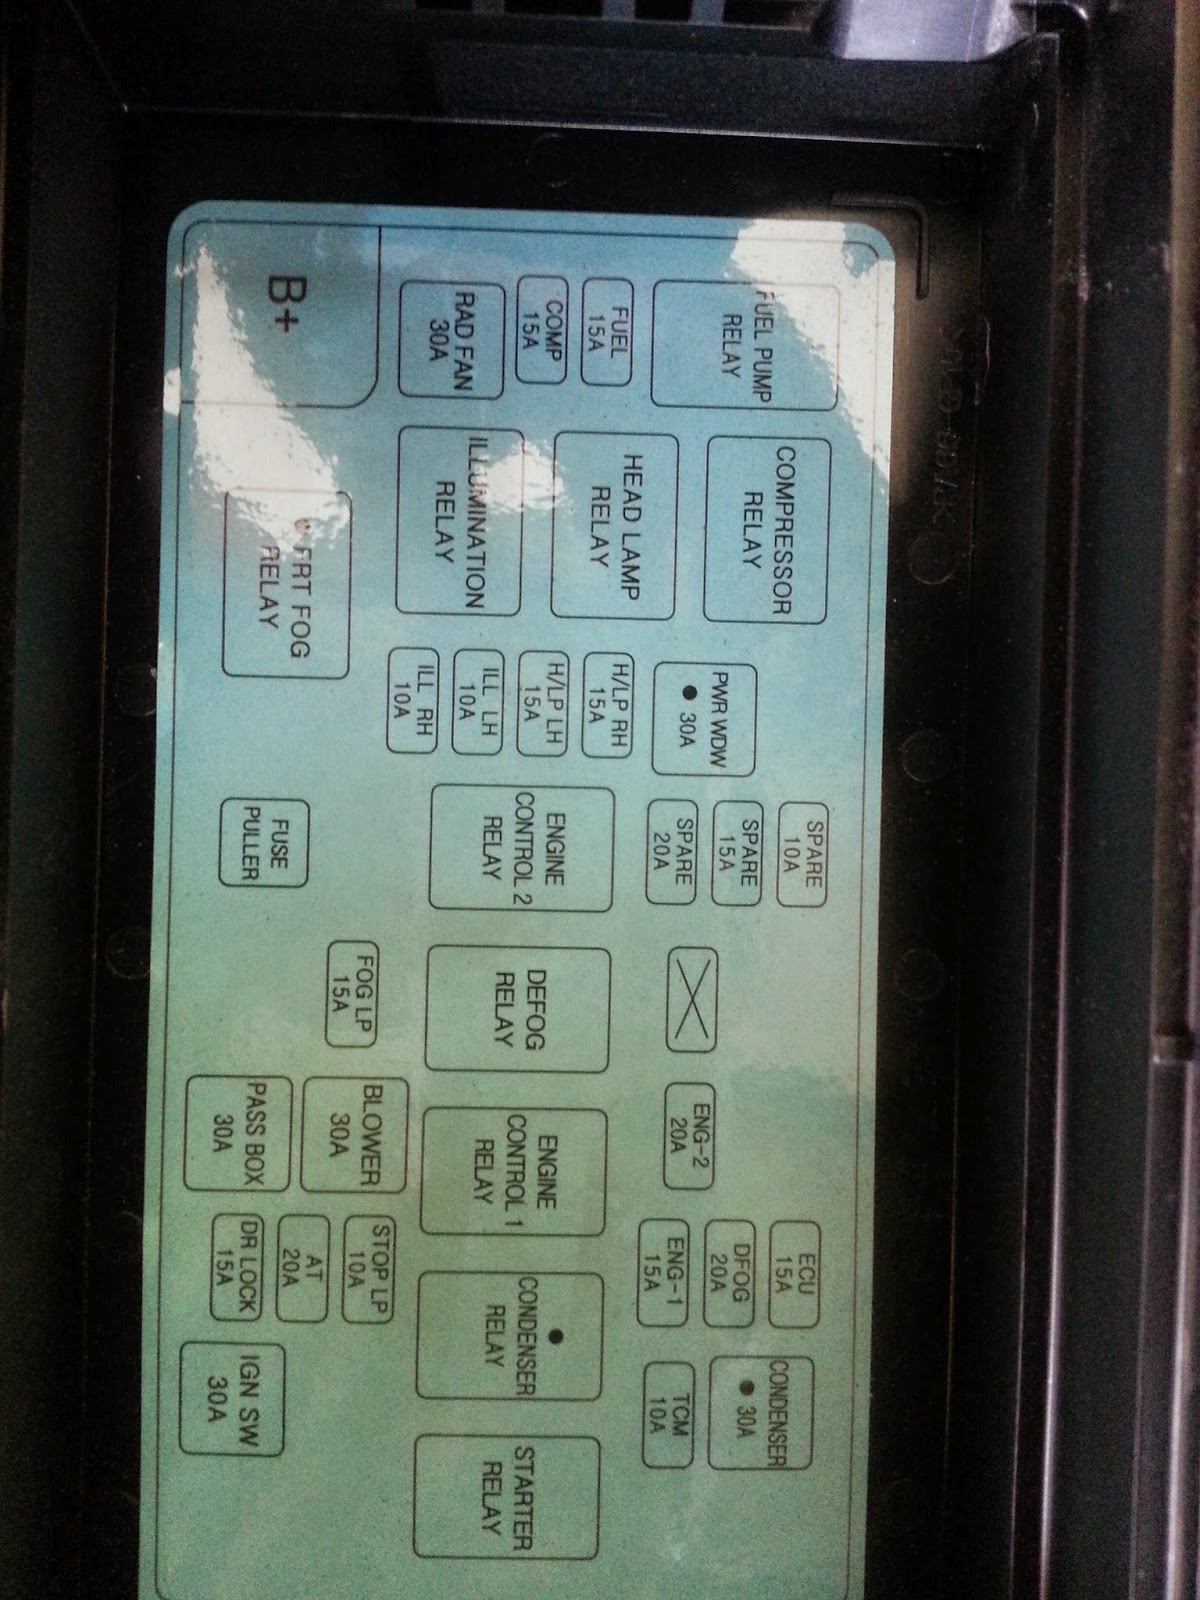 saga fuse diagram wiring diagram mega kancil 850 fuse box diagram kancil fuse box [ 1200 x 1600 Pixel ]